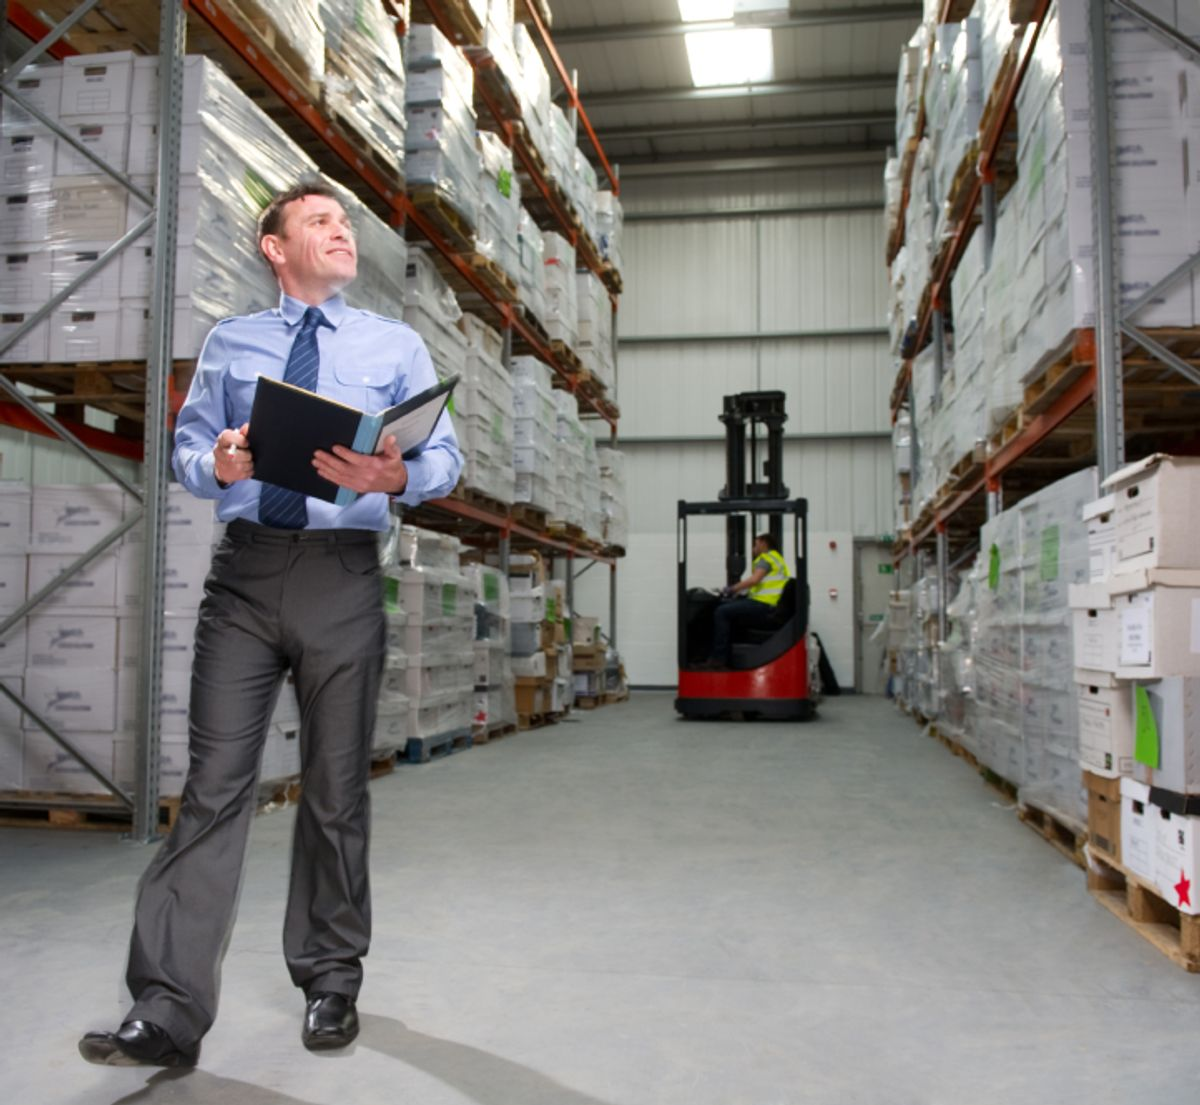 Warehousing: Small Changes Equal Big Paybacks